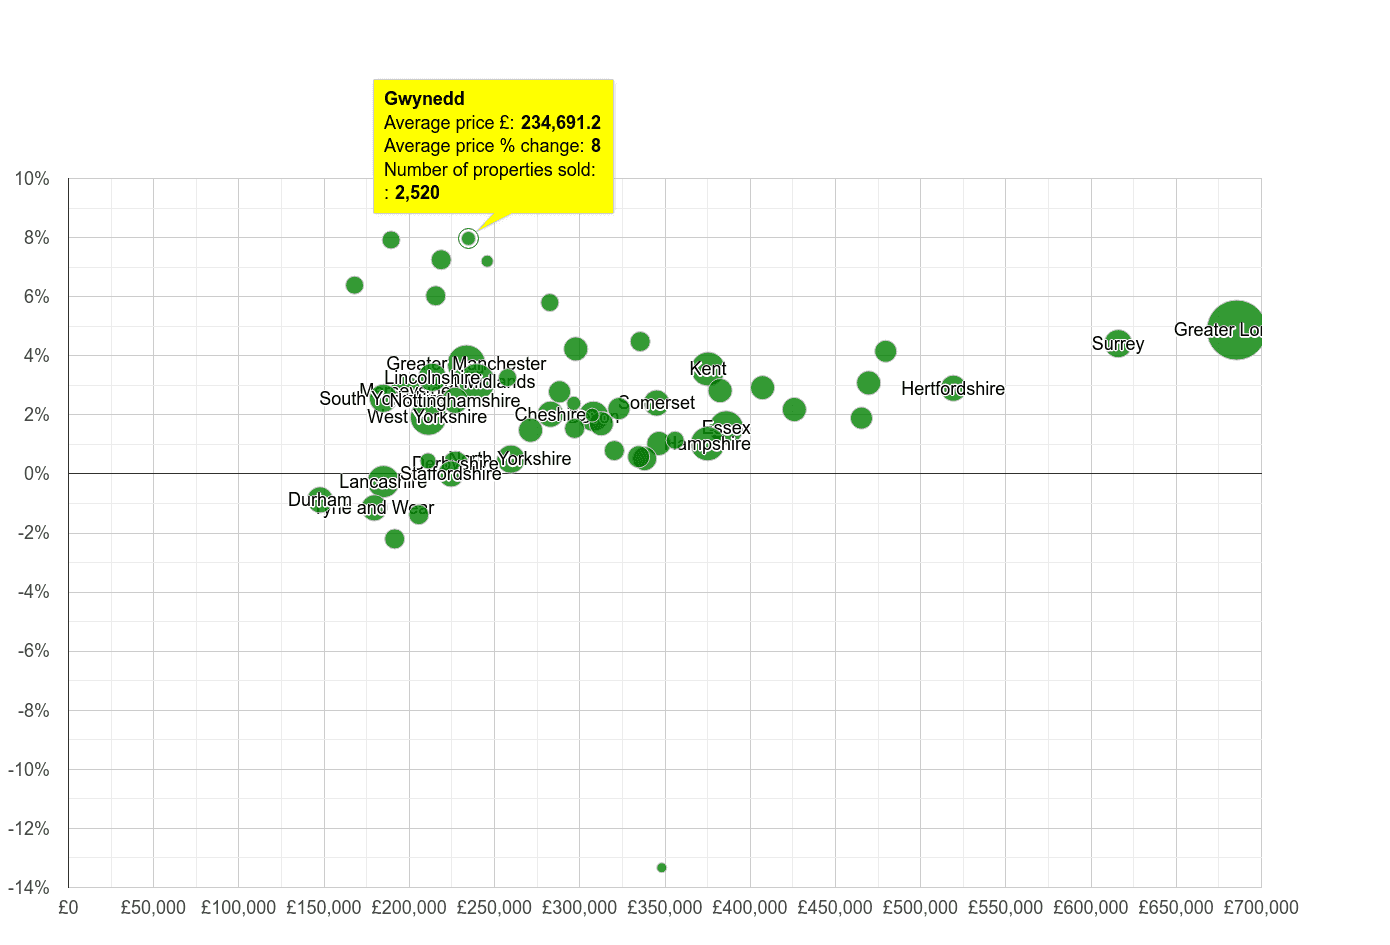 Gwynedd house prices compared to other counties